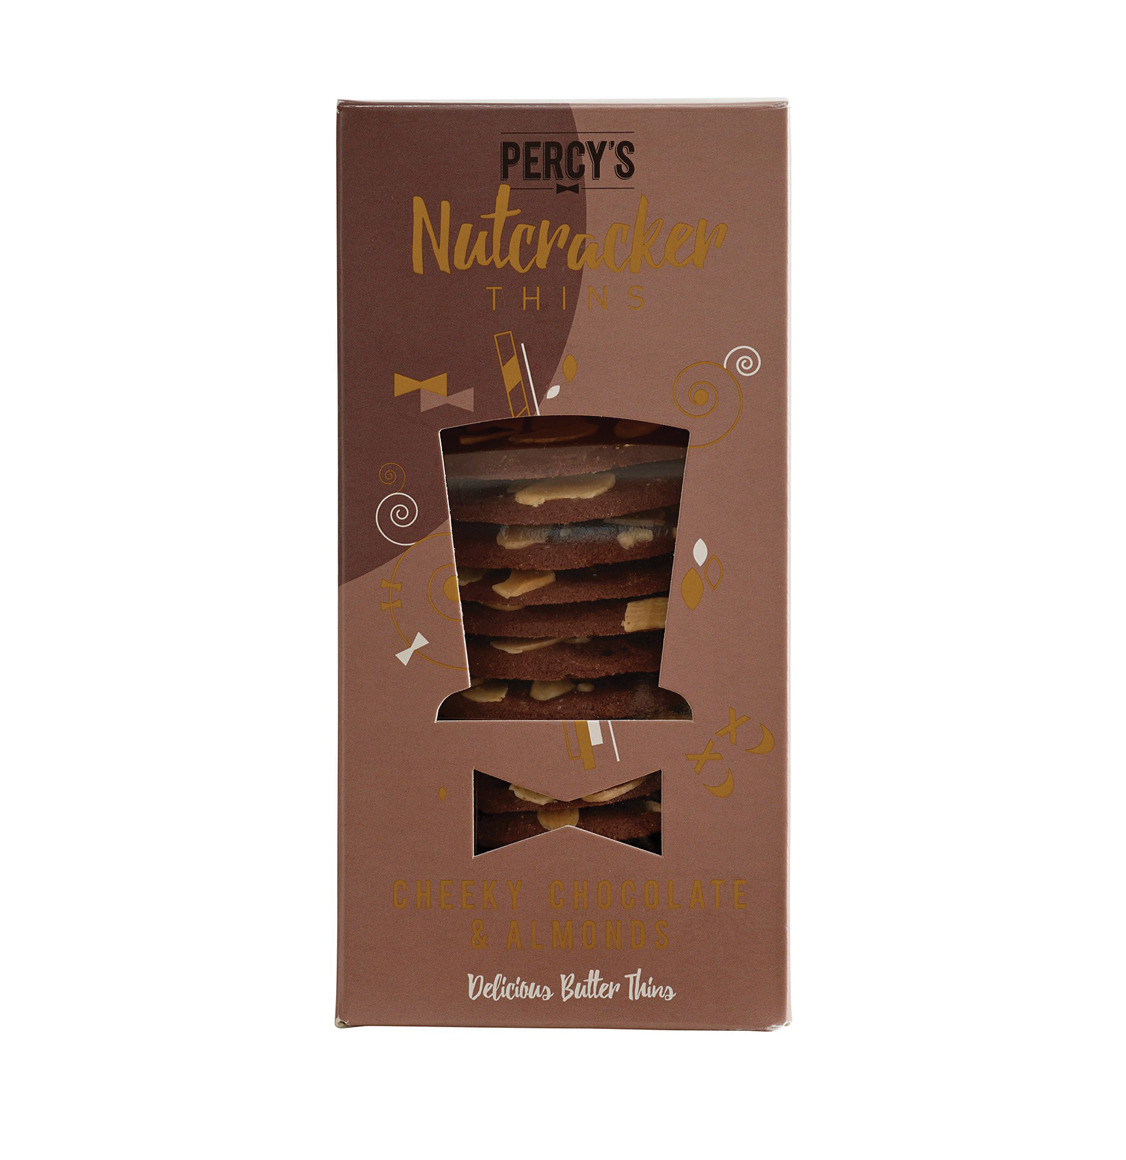 Percy's Bakery Cheeky Chocolate And Almonds 80g